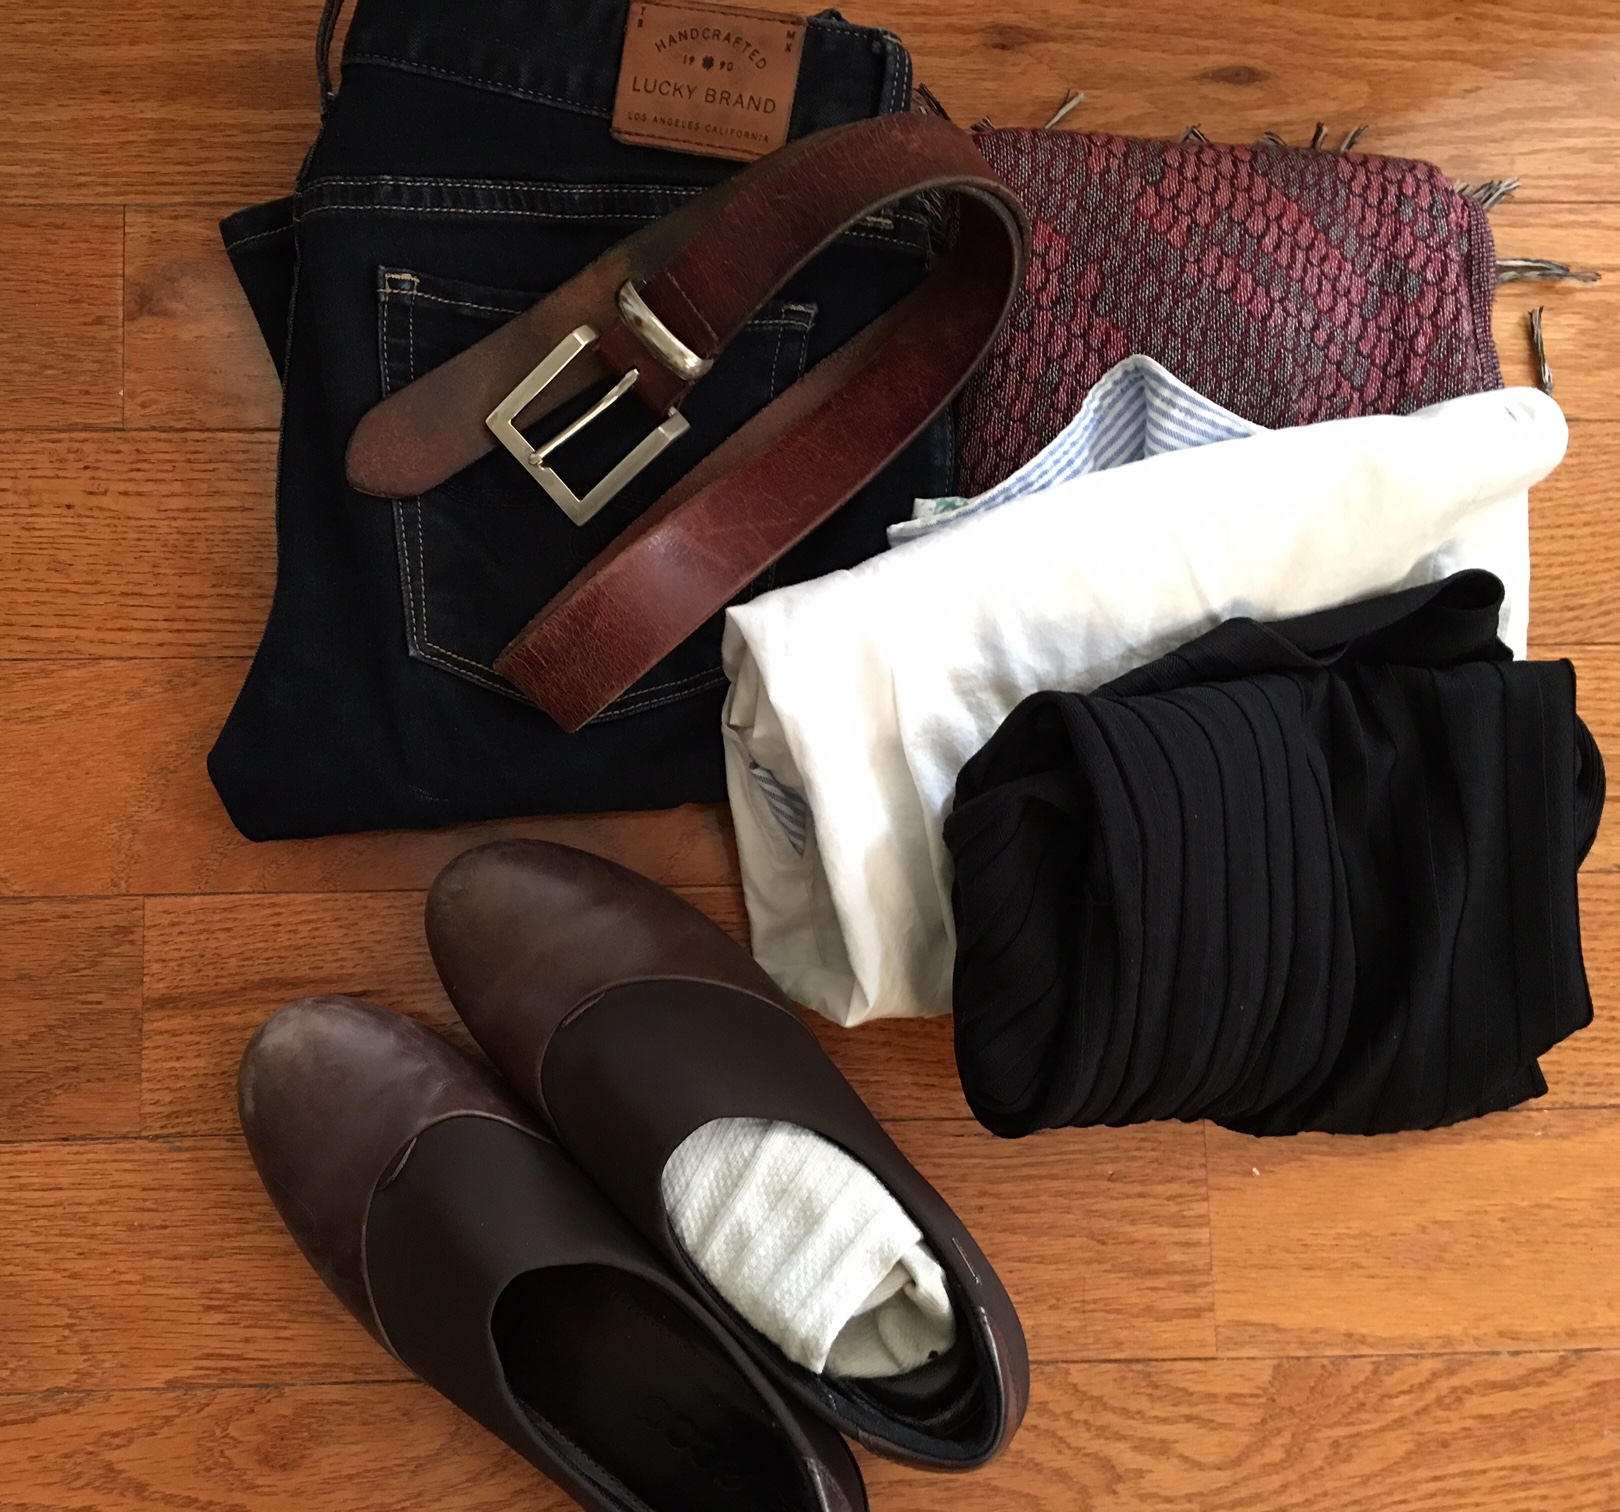 Clothes to wear to airport